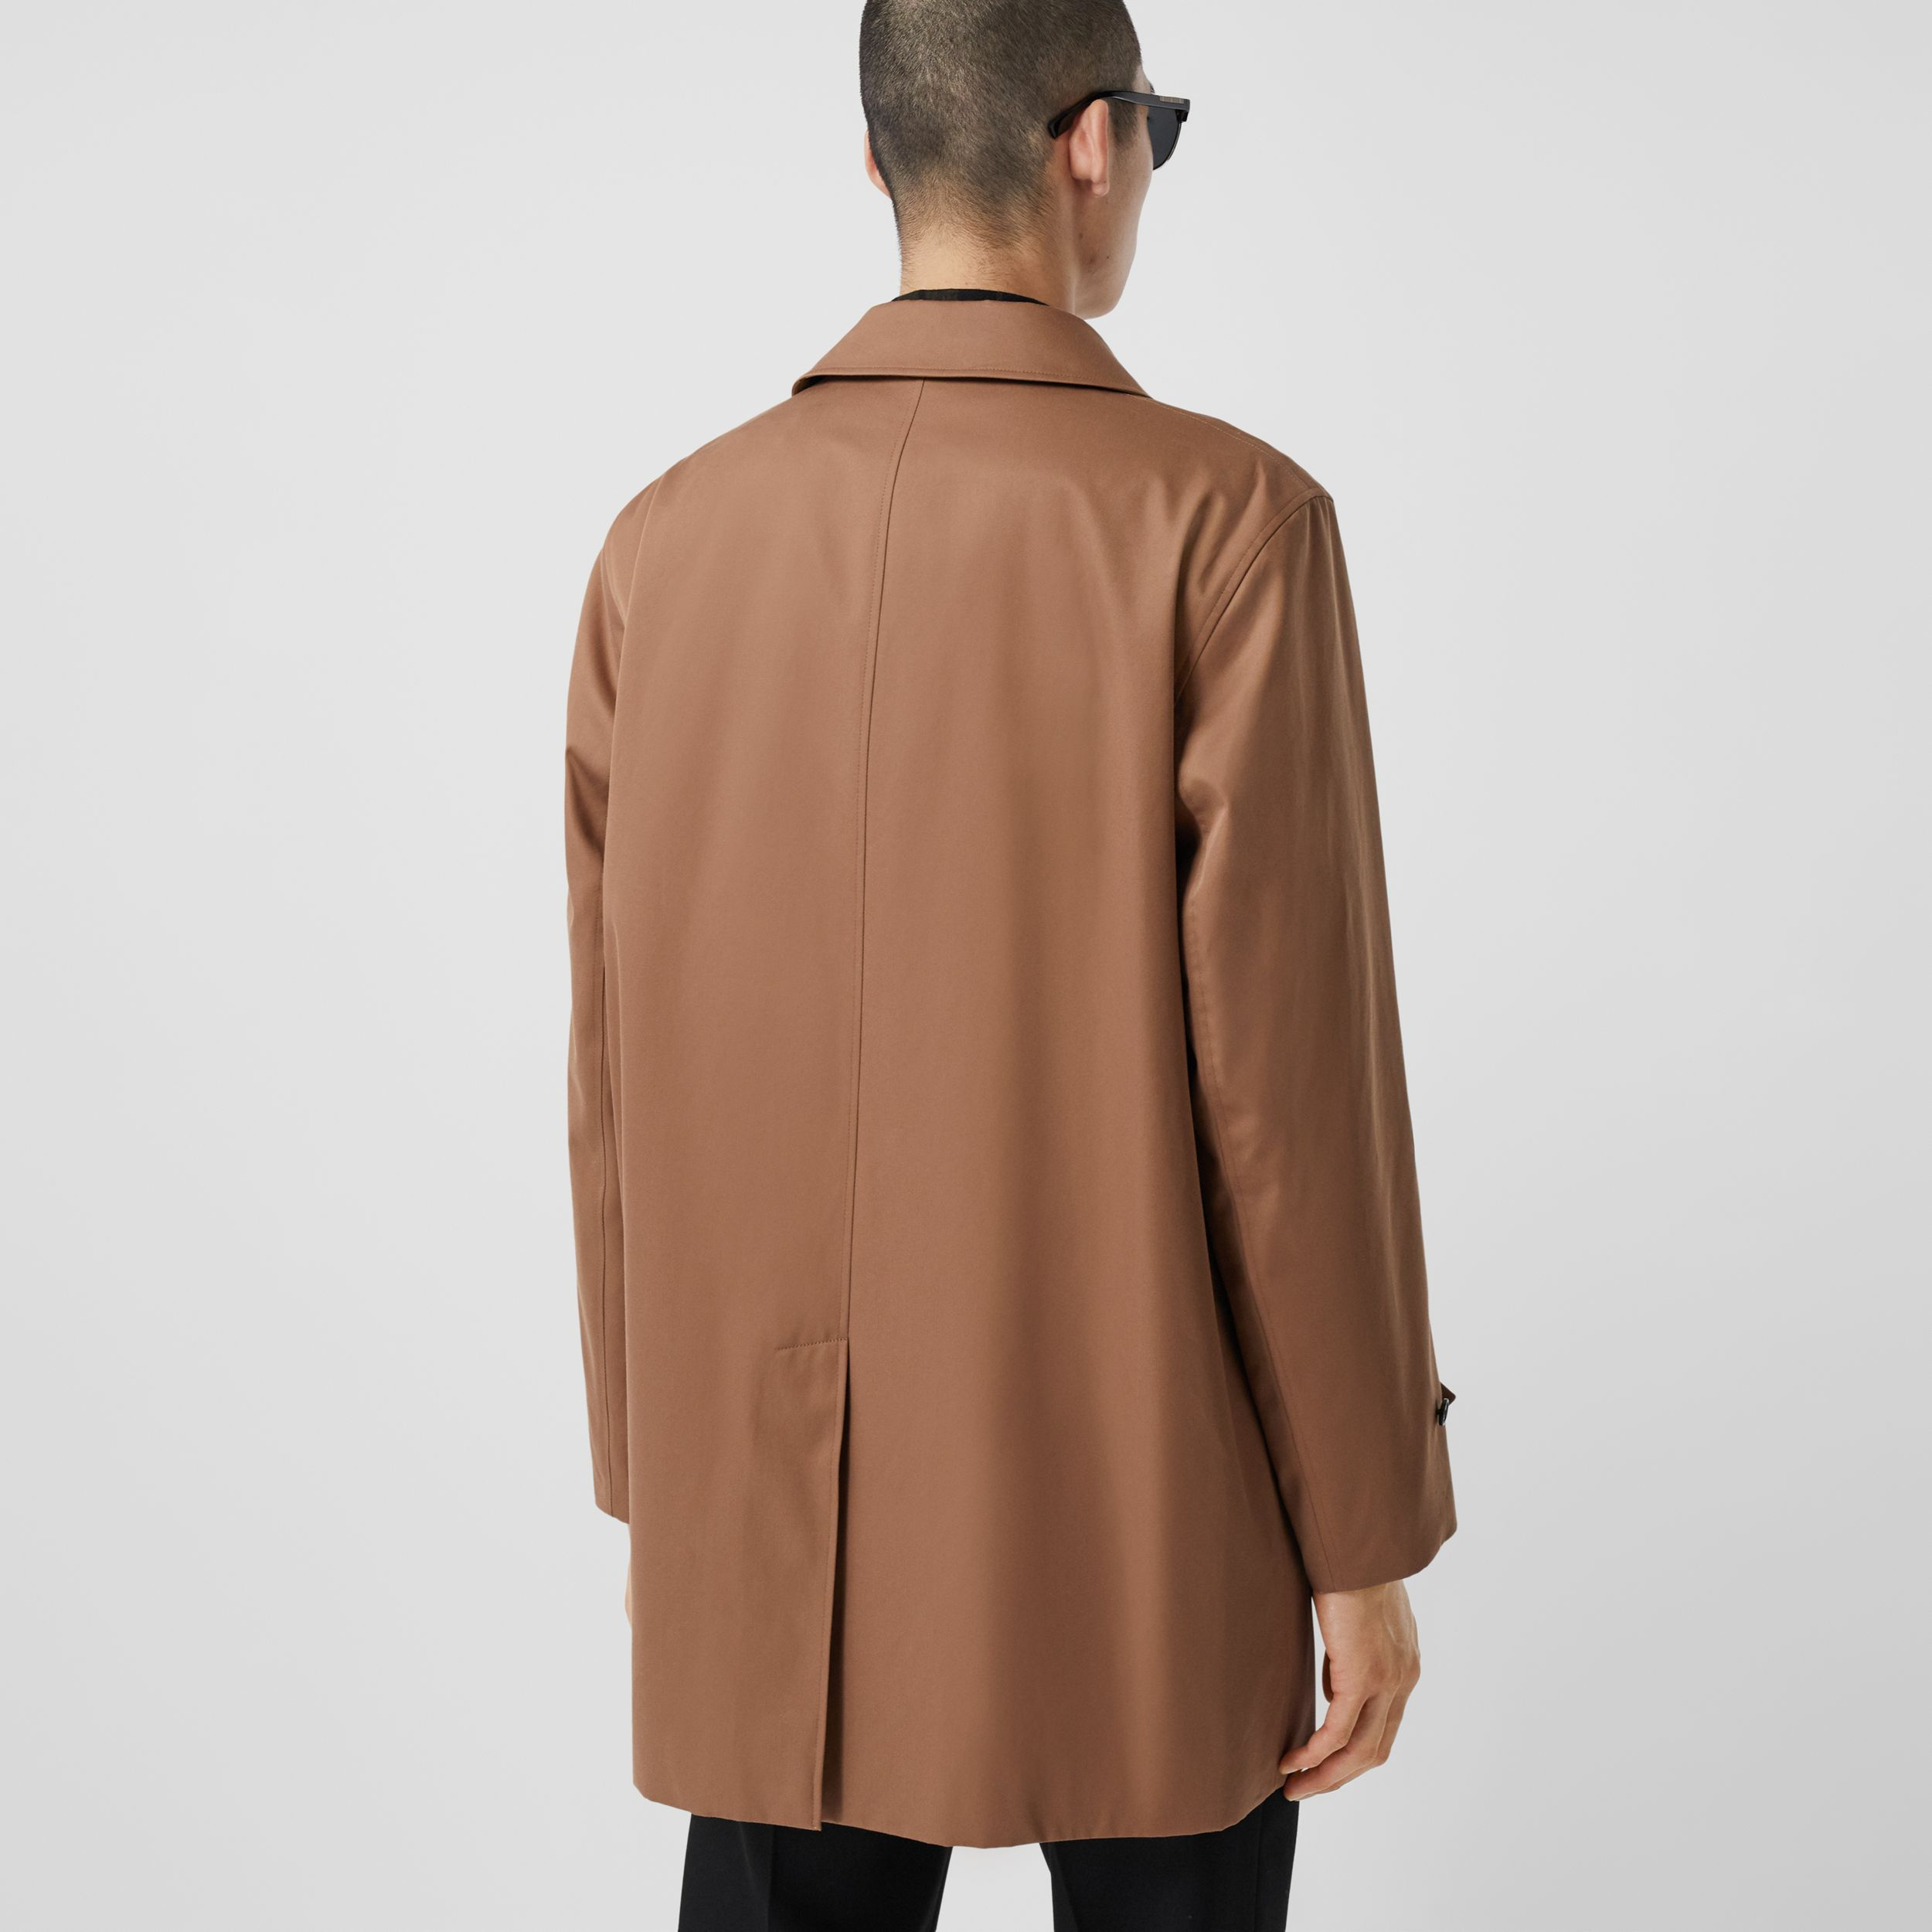 Organic Cotton Gabardine Car Coat in Dusty Caramel - Men | Burberry - 3